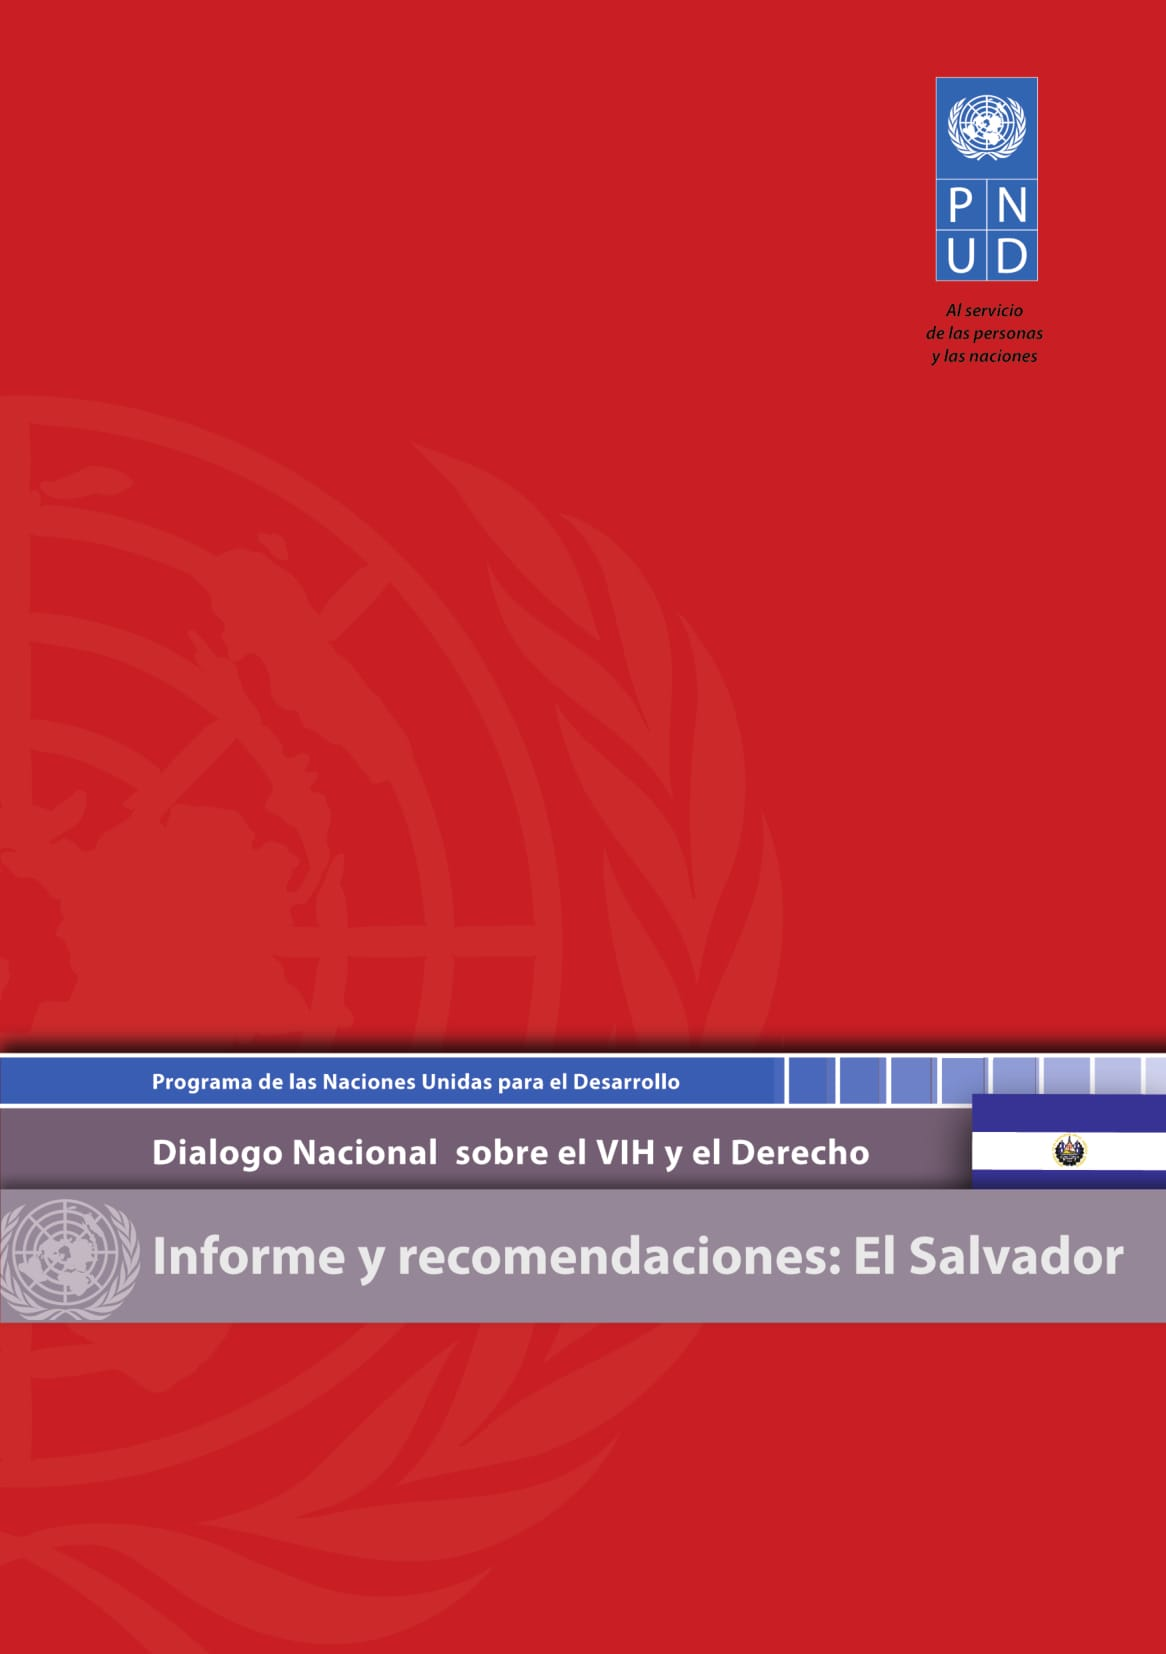 National Dialogue on HIV and the Law in El Salvador: Meeting Report